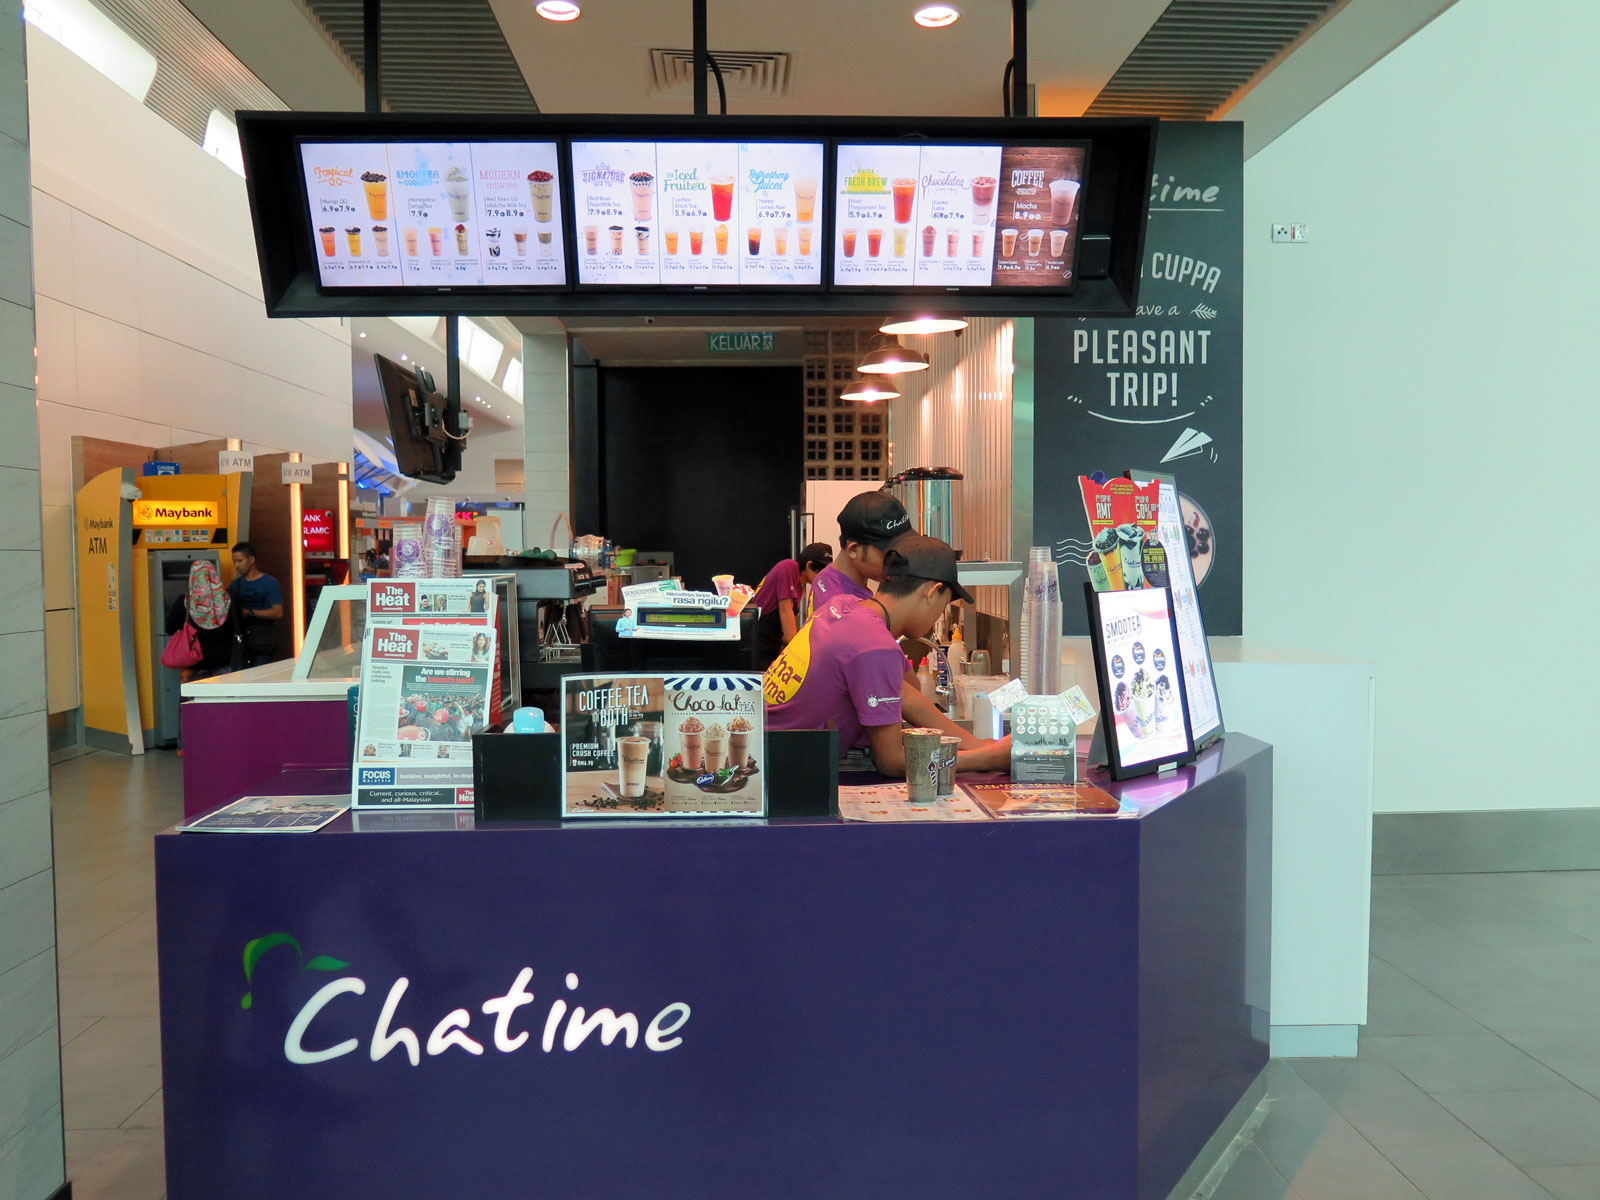 So will all Tealive outlets become Chatime outlets soon?